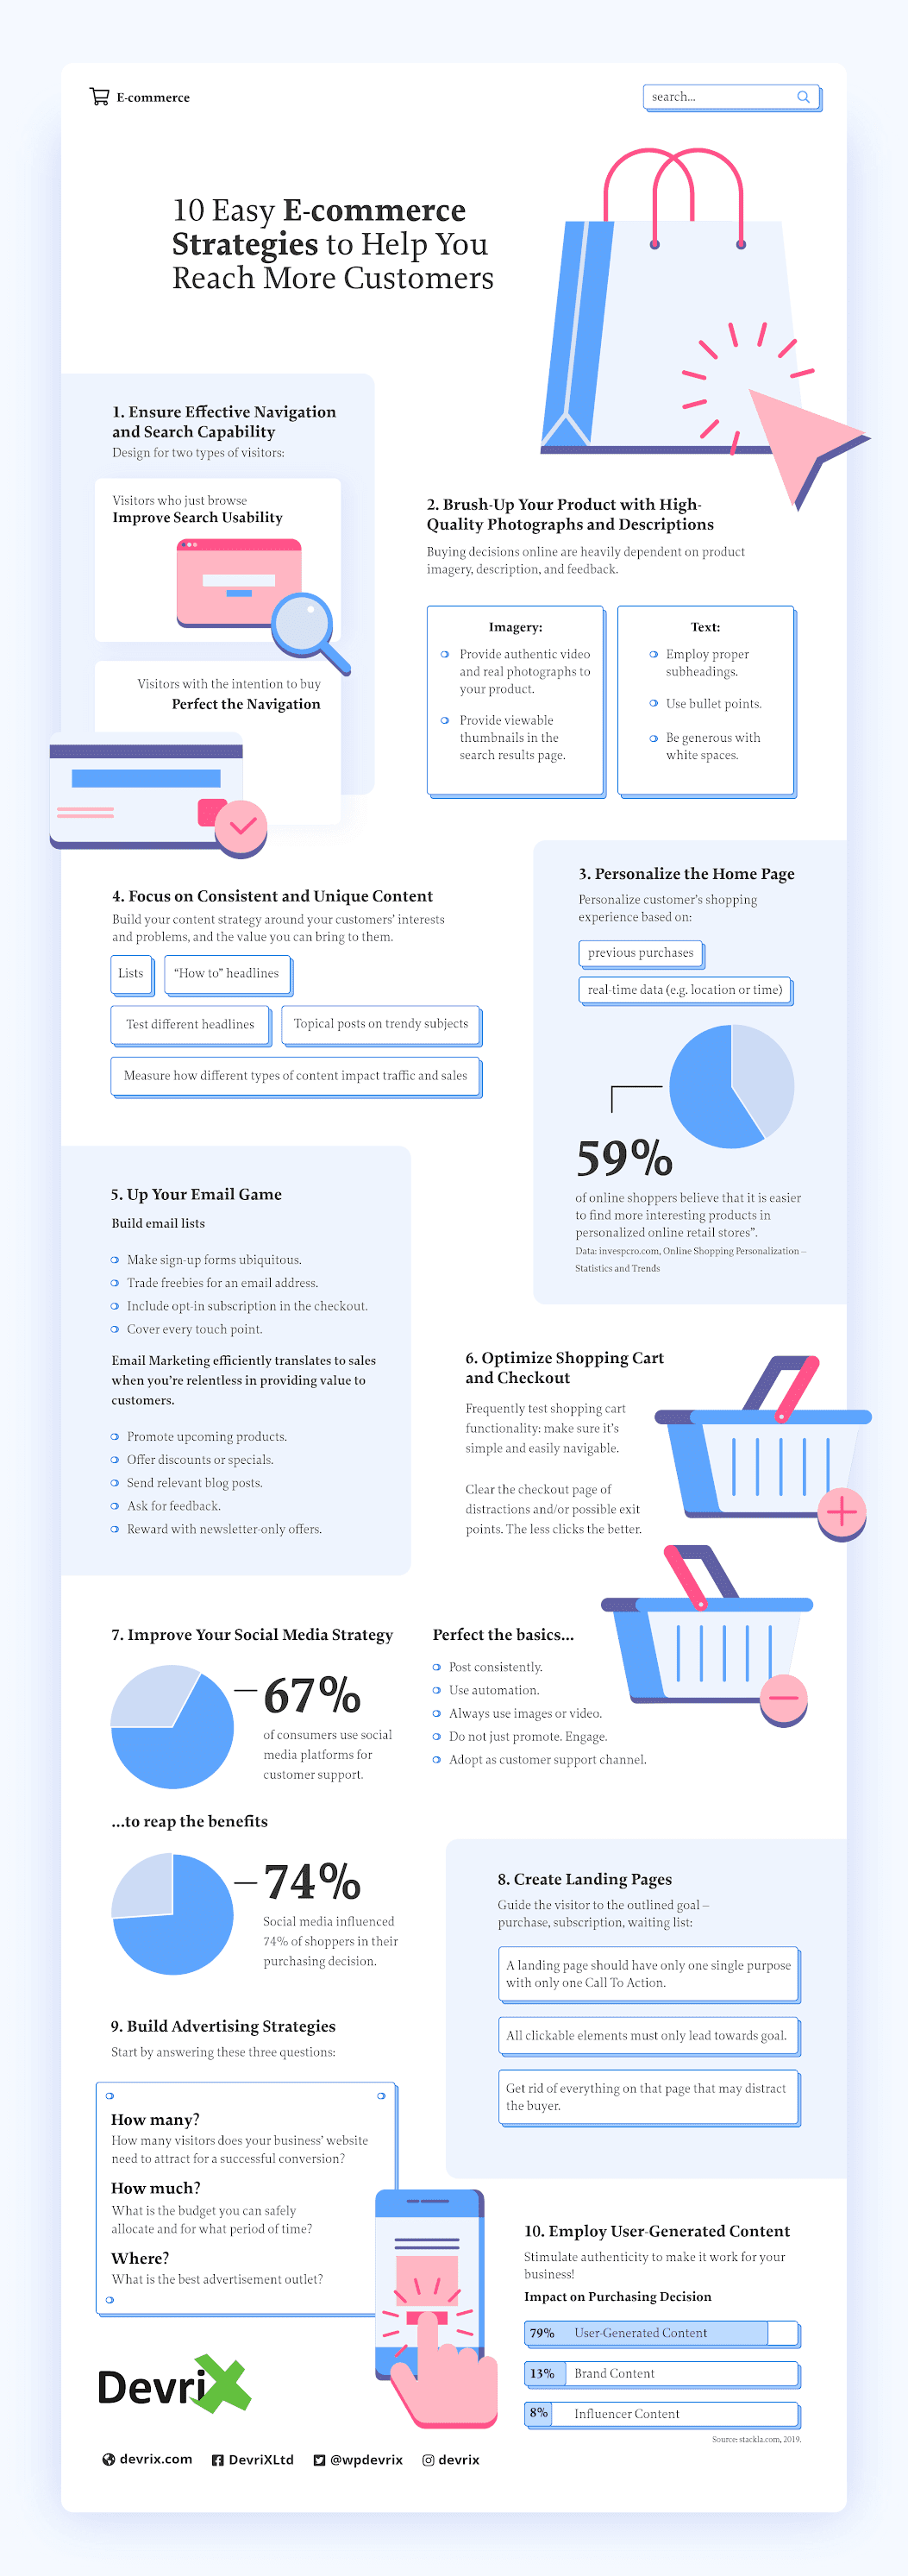 10 Easy E-commerce Strategies to Help You Reach More Customers #infographic #eCommerce #E-commerce Strategies #infographics #Customers #Business